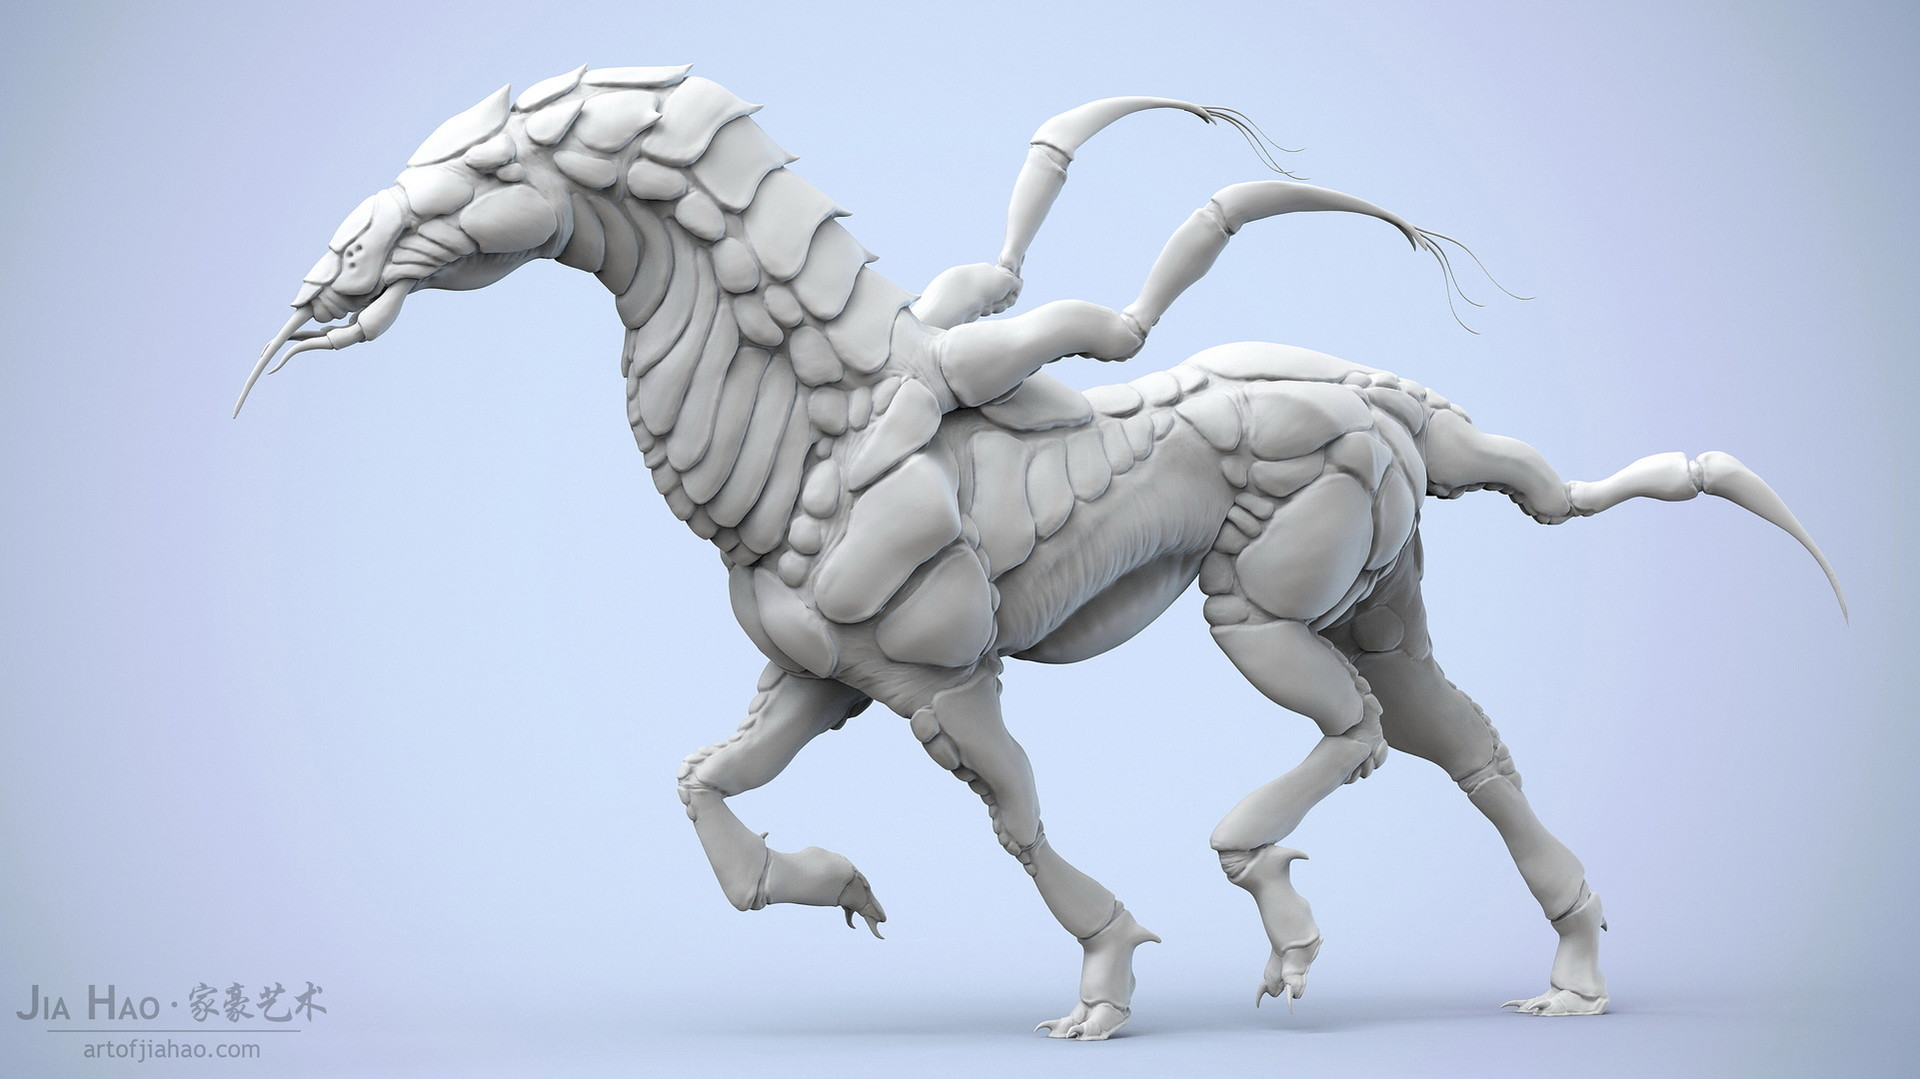 Jia hao 2018 insectoidhorse 01